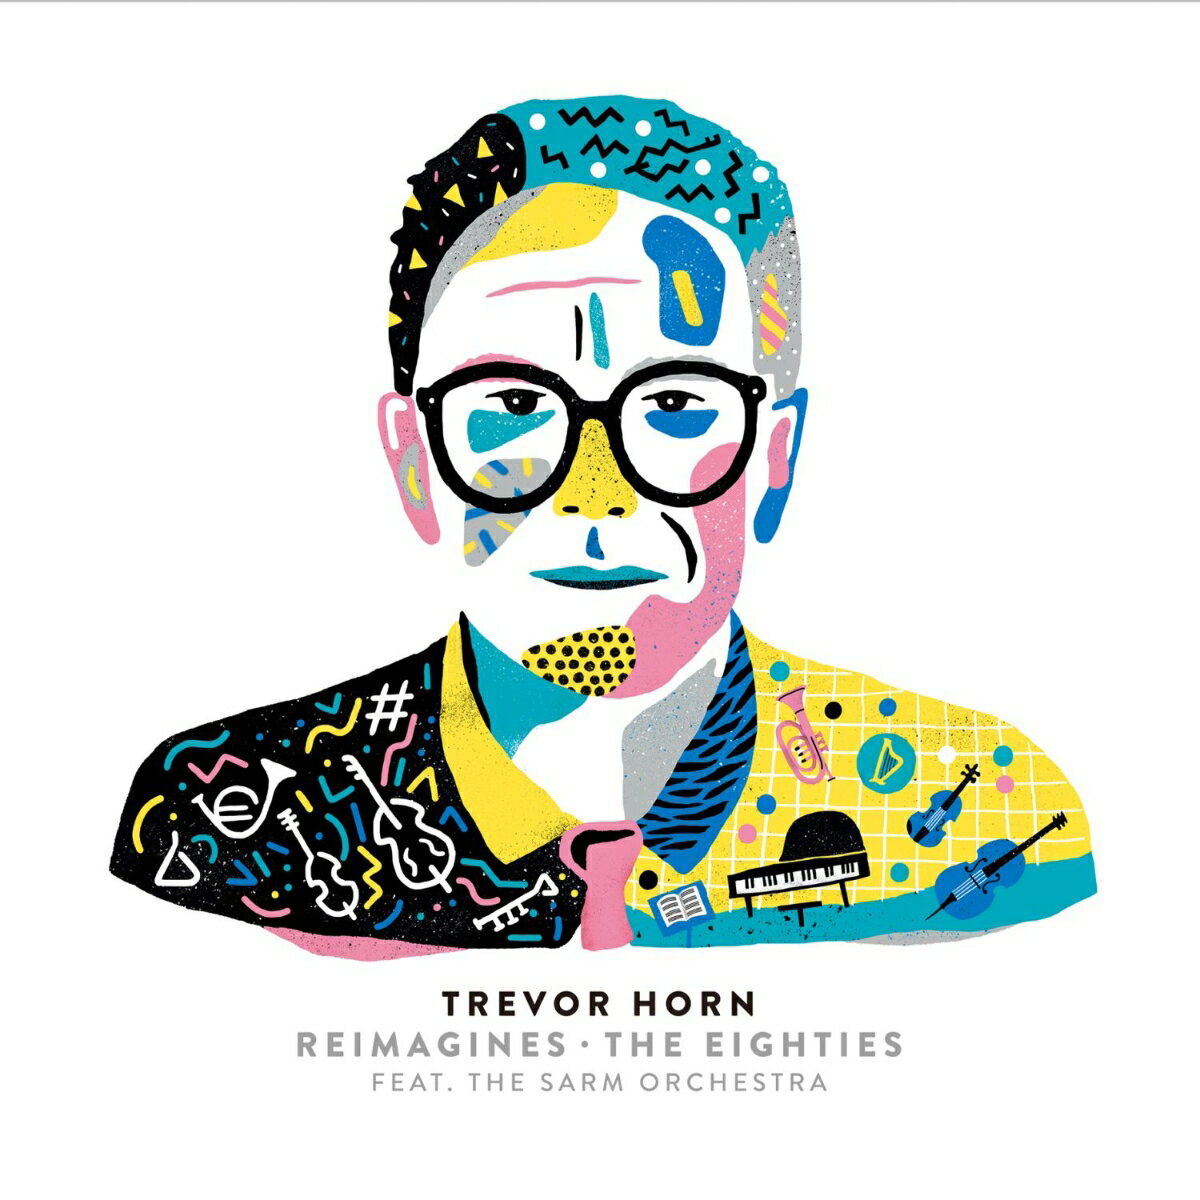 Trevor Horn Reimagines - The Eighties Featuring the Sarm Orchestra [ Trevor Horn ]